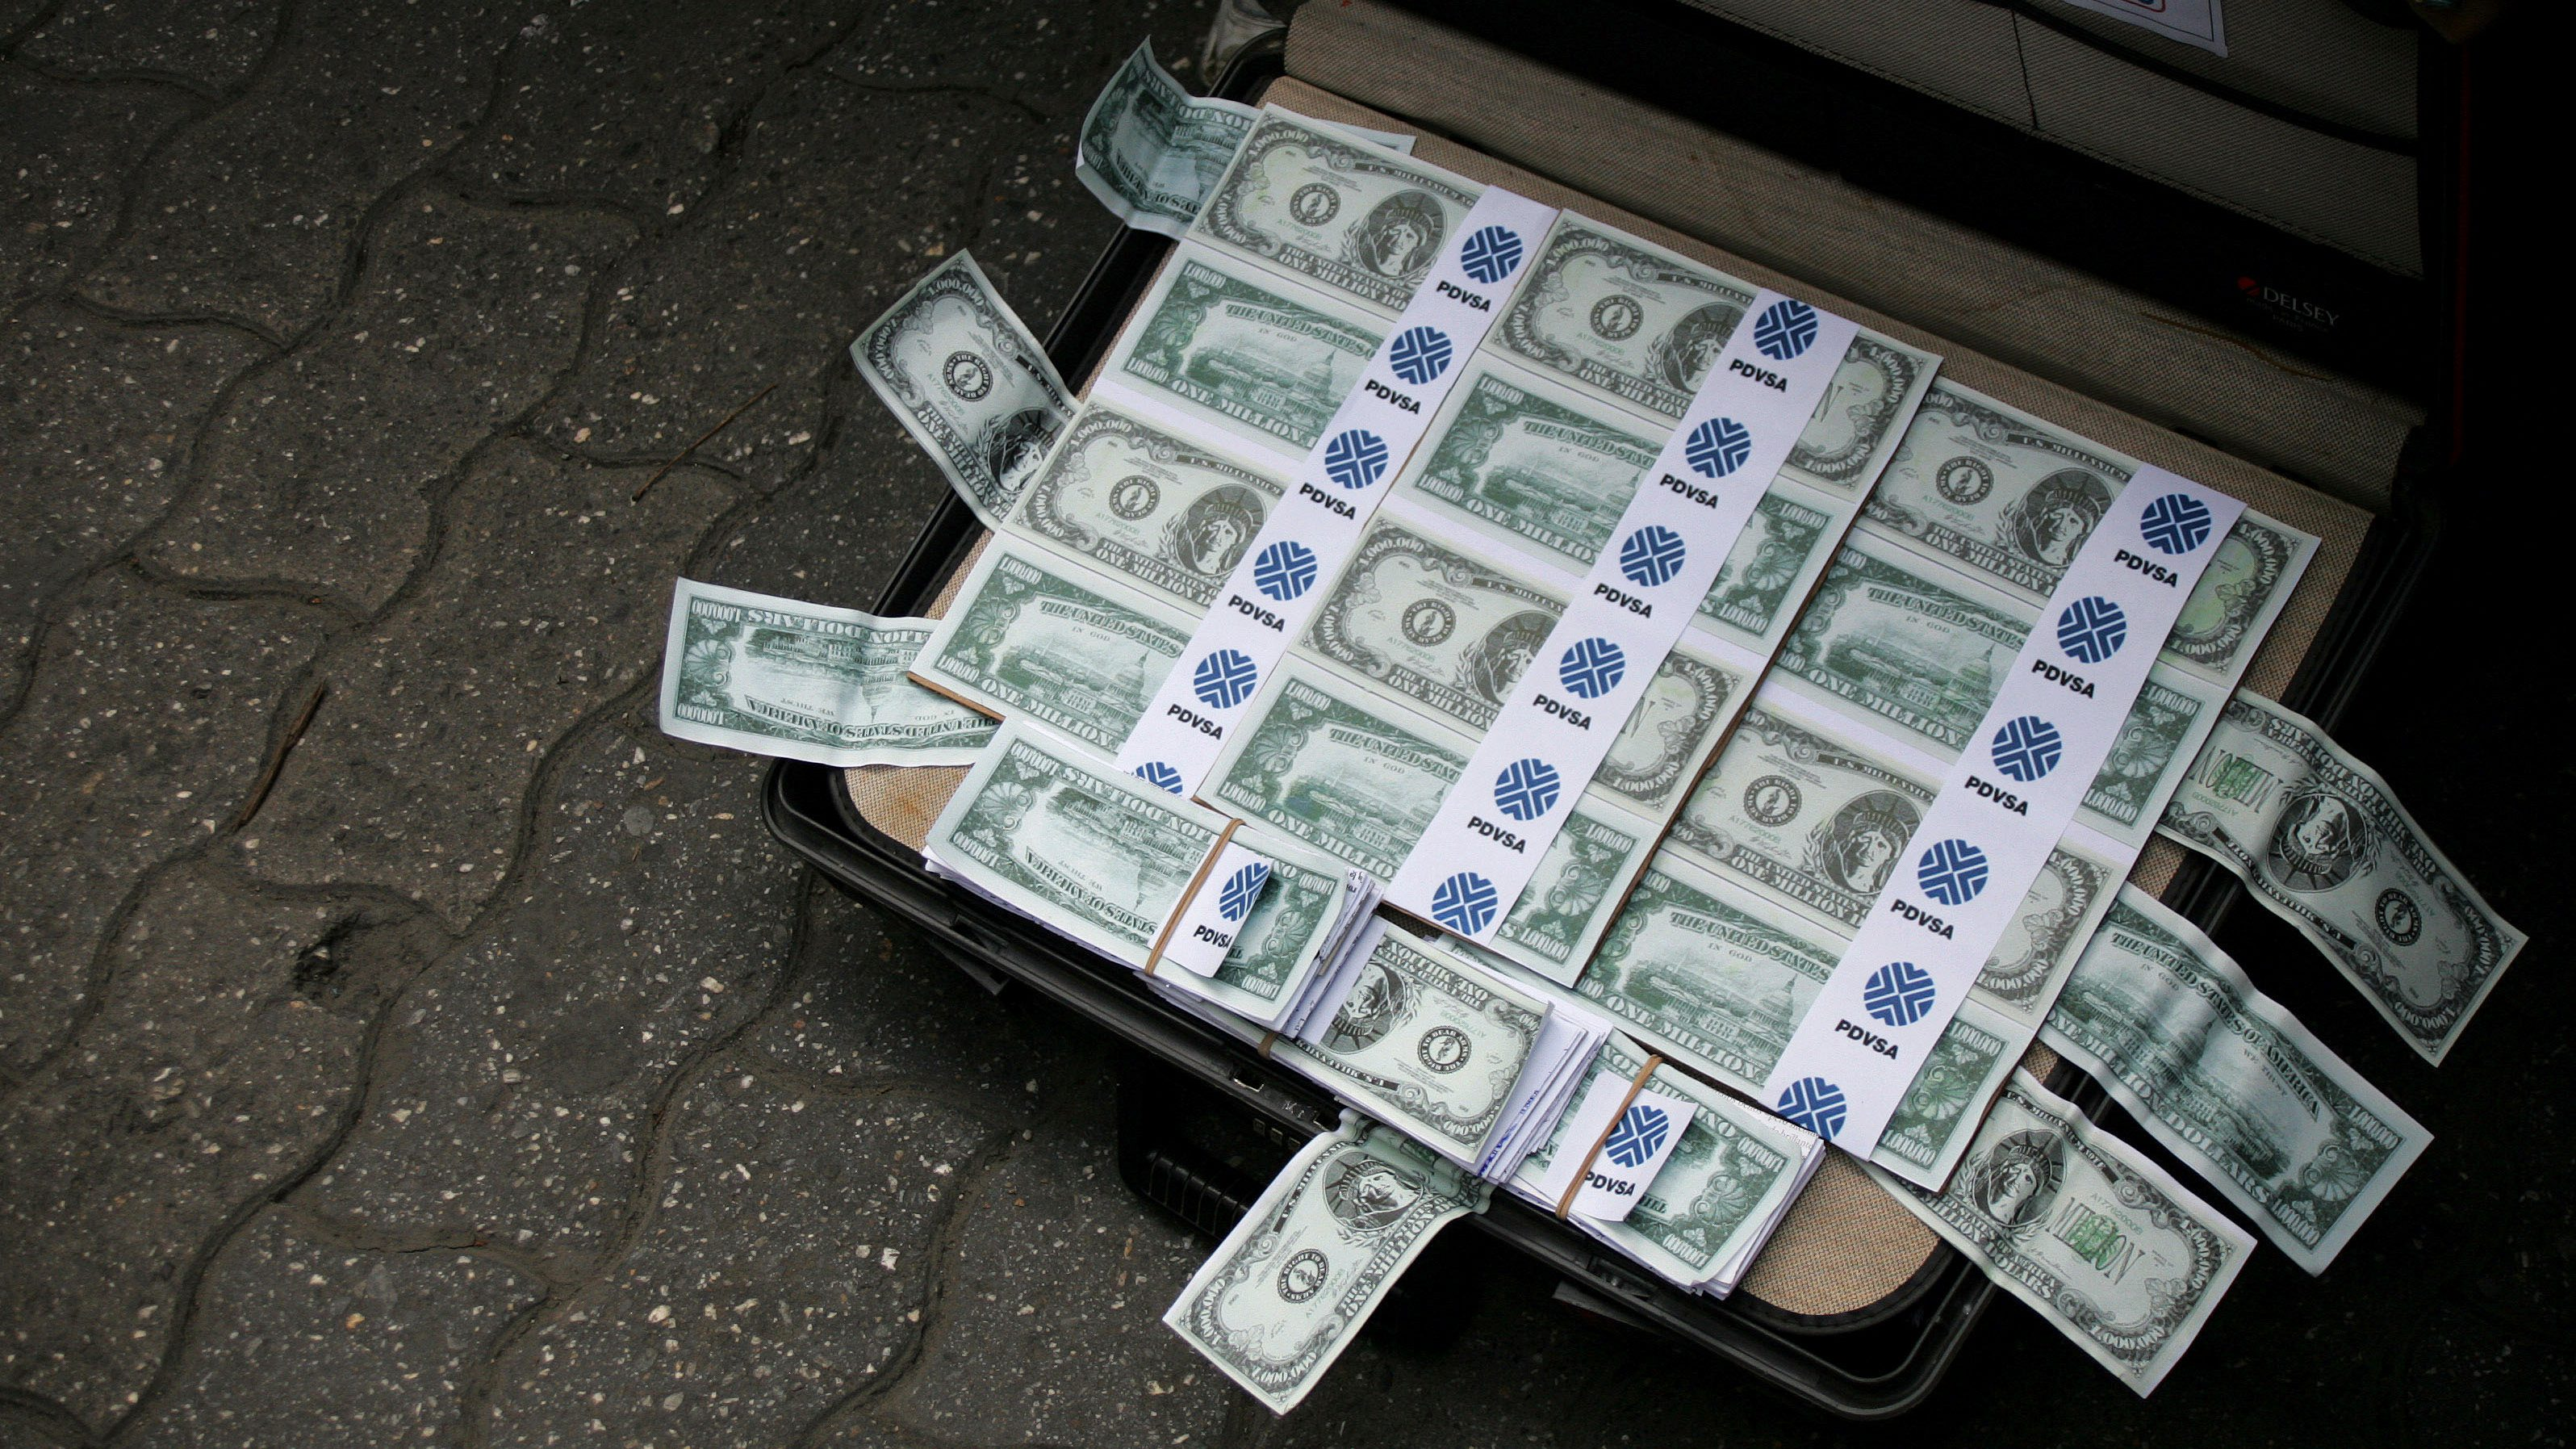 A suitcase full of counterfeit money lies on the floor during a protest in Caracas August 15, 2007. Venezuelan state oil company PDVSA is investigating how a suitcase with nearly $800,000 in undeclared cash ended up on a plane carrying company officials to Argentina to work on bilateral cooperation deals. The incident prompted the resignation of an official in Argentine President Nestor Kirchner's government and has embarrassed Venezuela's Hugo Chavez, who travelled earlier this week to Buenos Aires to discuss energy accords with his leftist counterpart.